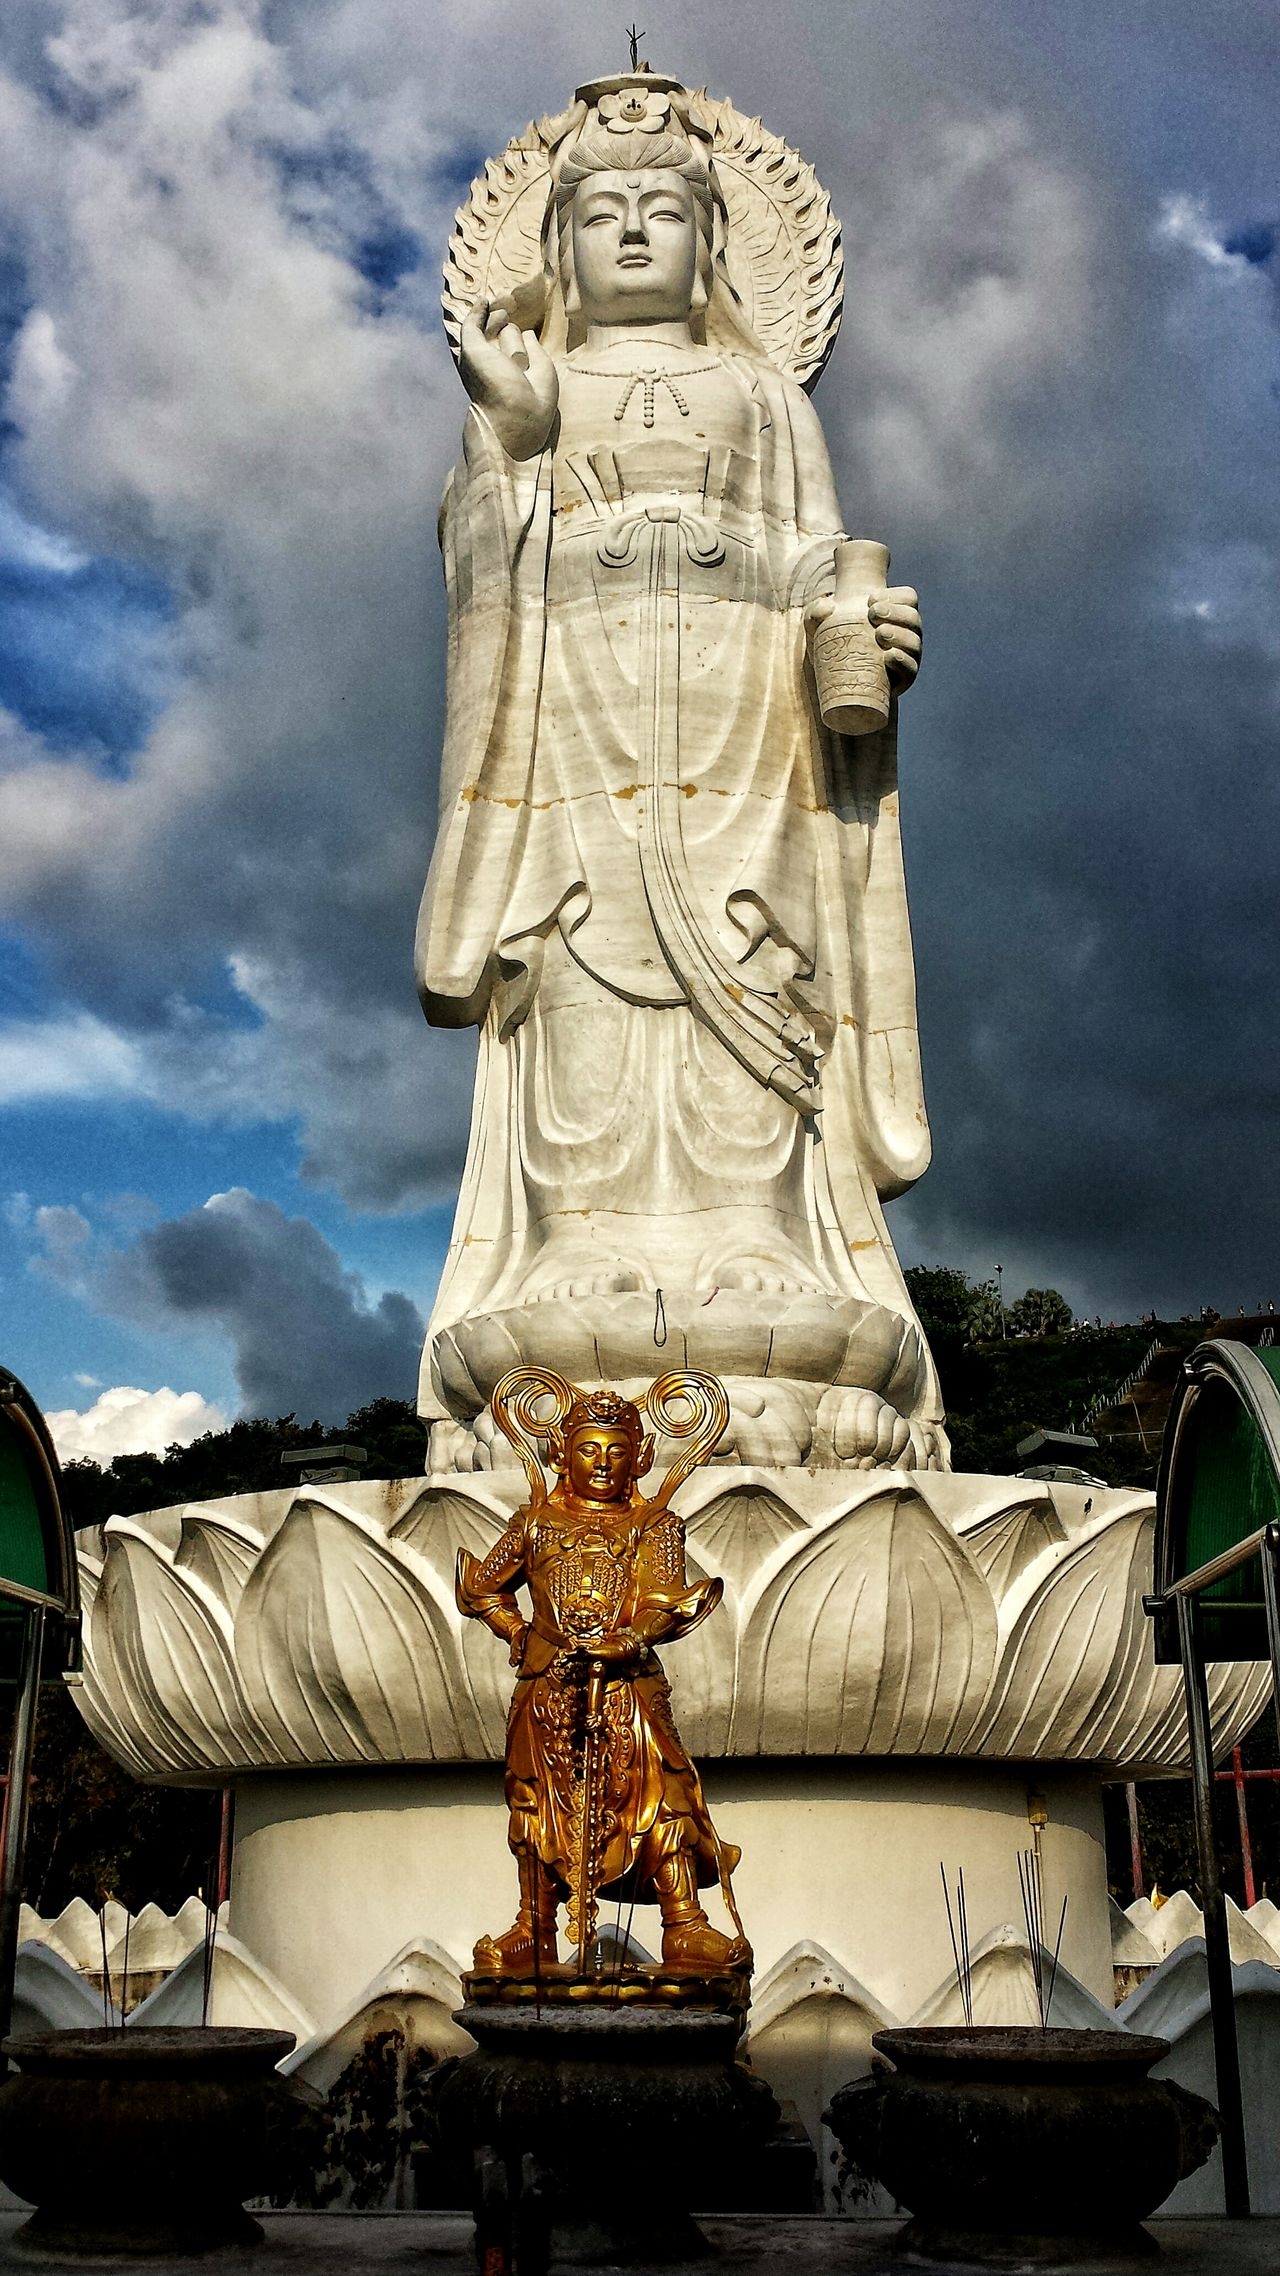 Showcase: January พระโพธิสัตว์กวนอิมนครหาดใหญ่ Phra Bodhisattva Guan Yin Kuan Yin Bodhisattva Statue Blue Sky Clouds Southern Thailand Outdoors Southeast Asia ASIA Low Angle Songkhla Hat Yai Songkhla Province Afternoon Spotted In Thailand